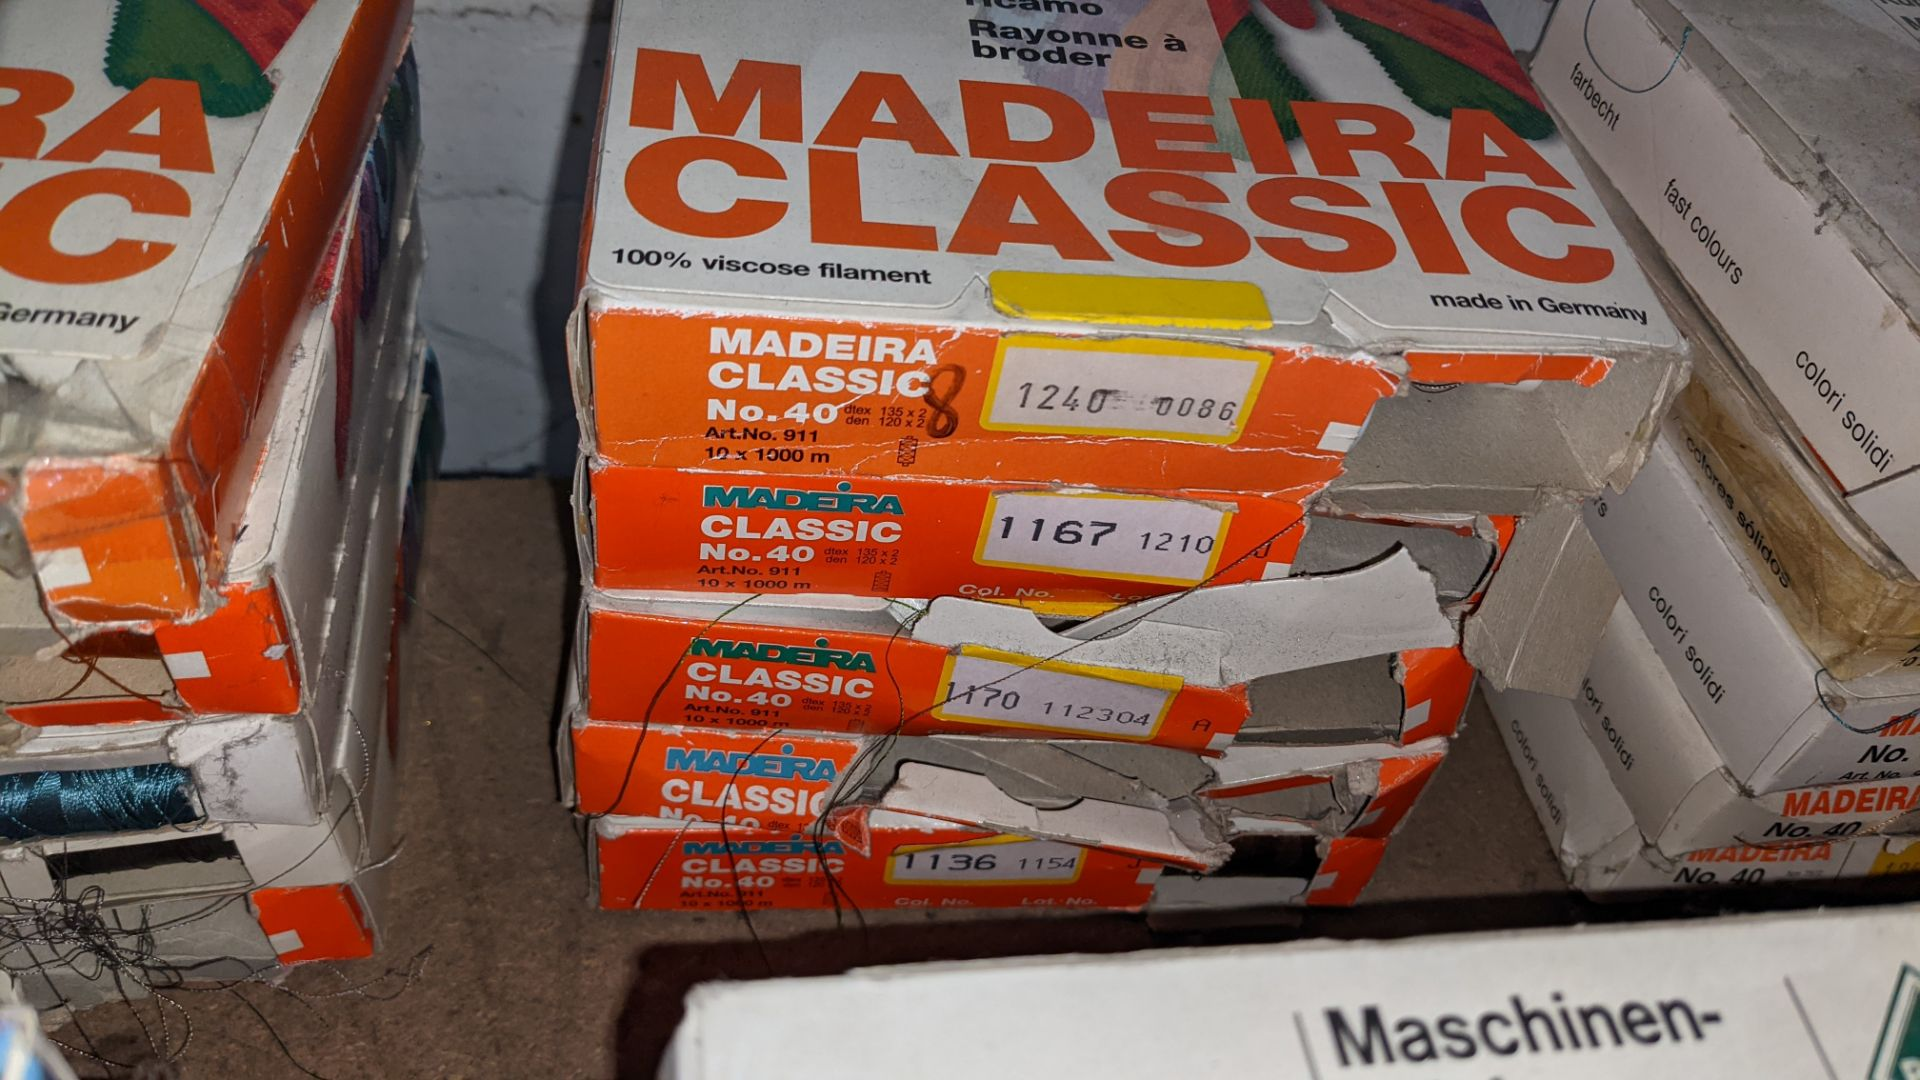 15 assorted boxes of Madeira Classic No. 40 embroidery rayon thread - Image 5 of 8